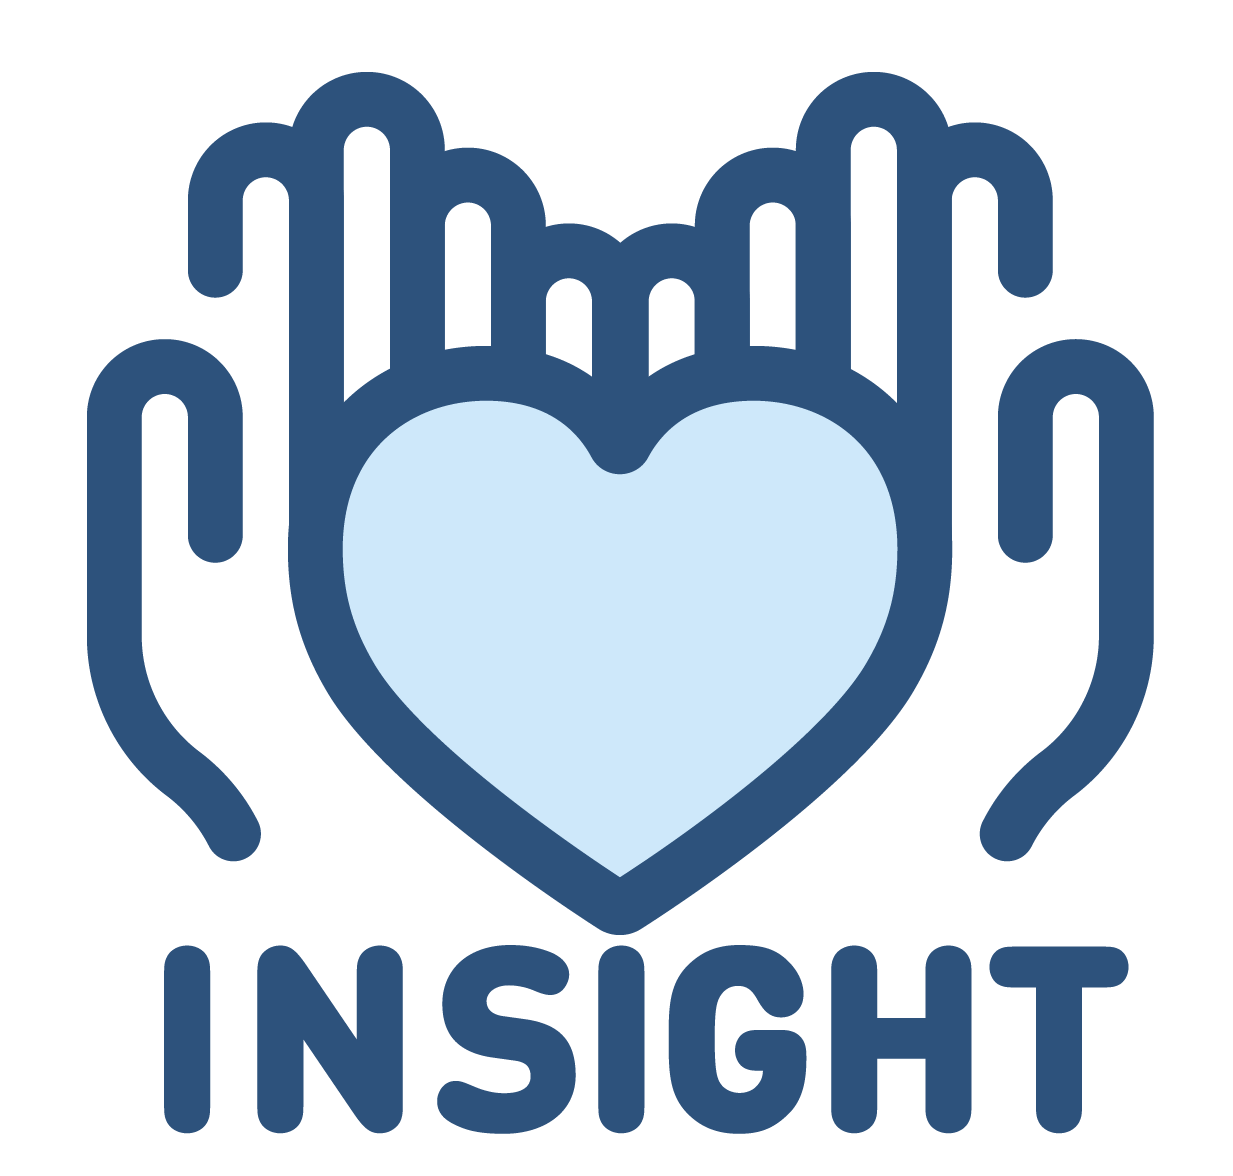 Support - The Heart of Insight Communityin Asheville